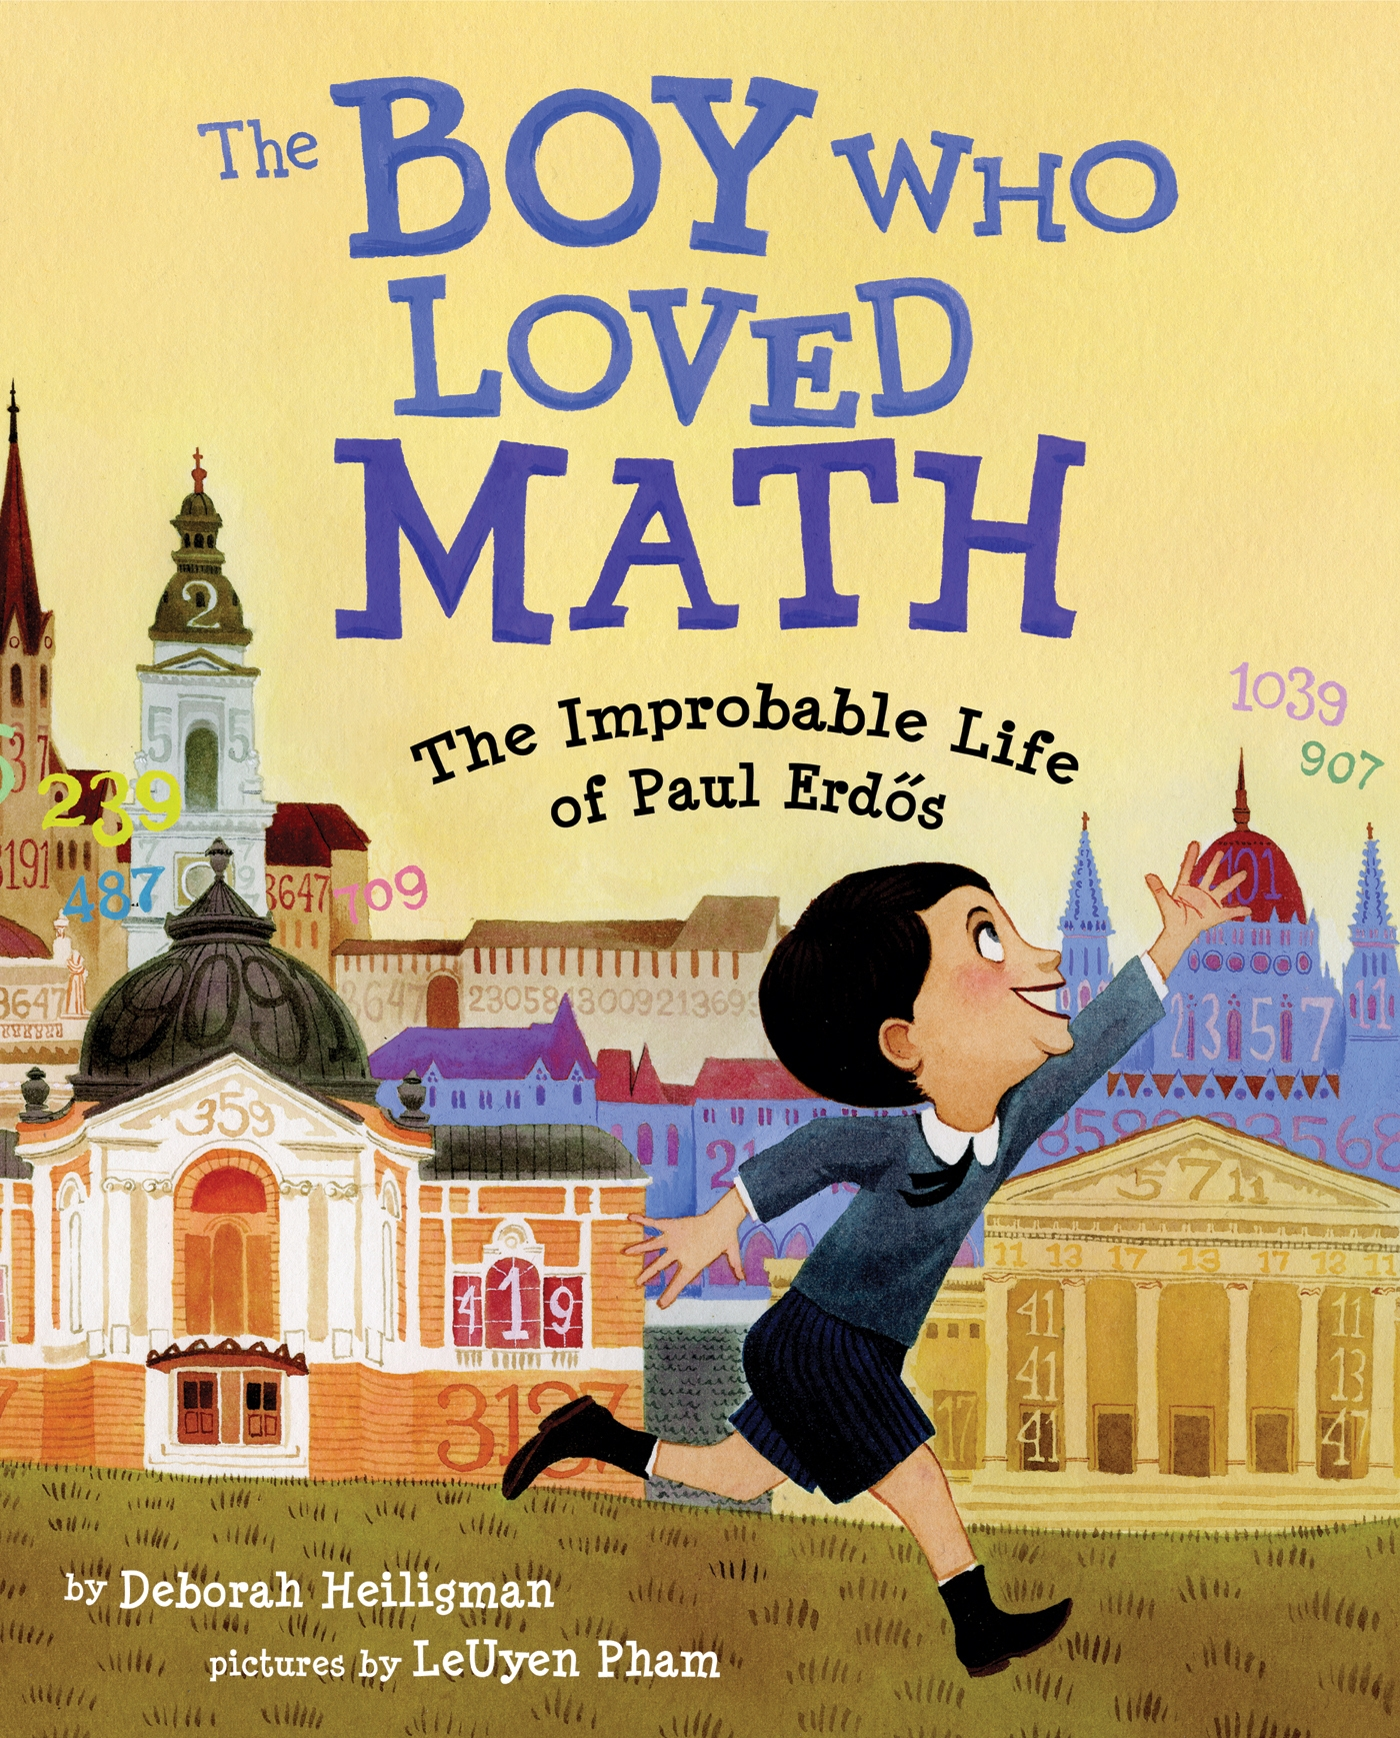 The Boy Who Loved Math The Improbable Life of Paul Erdos